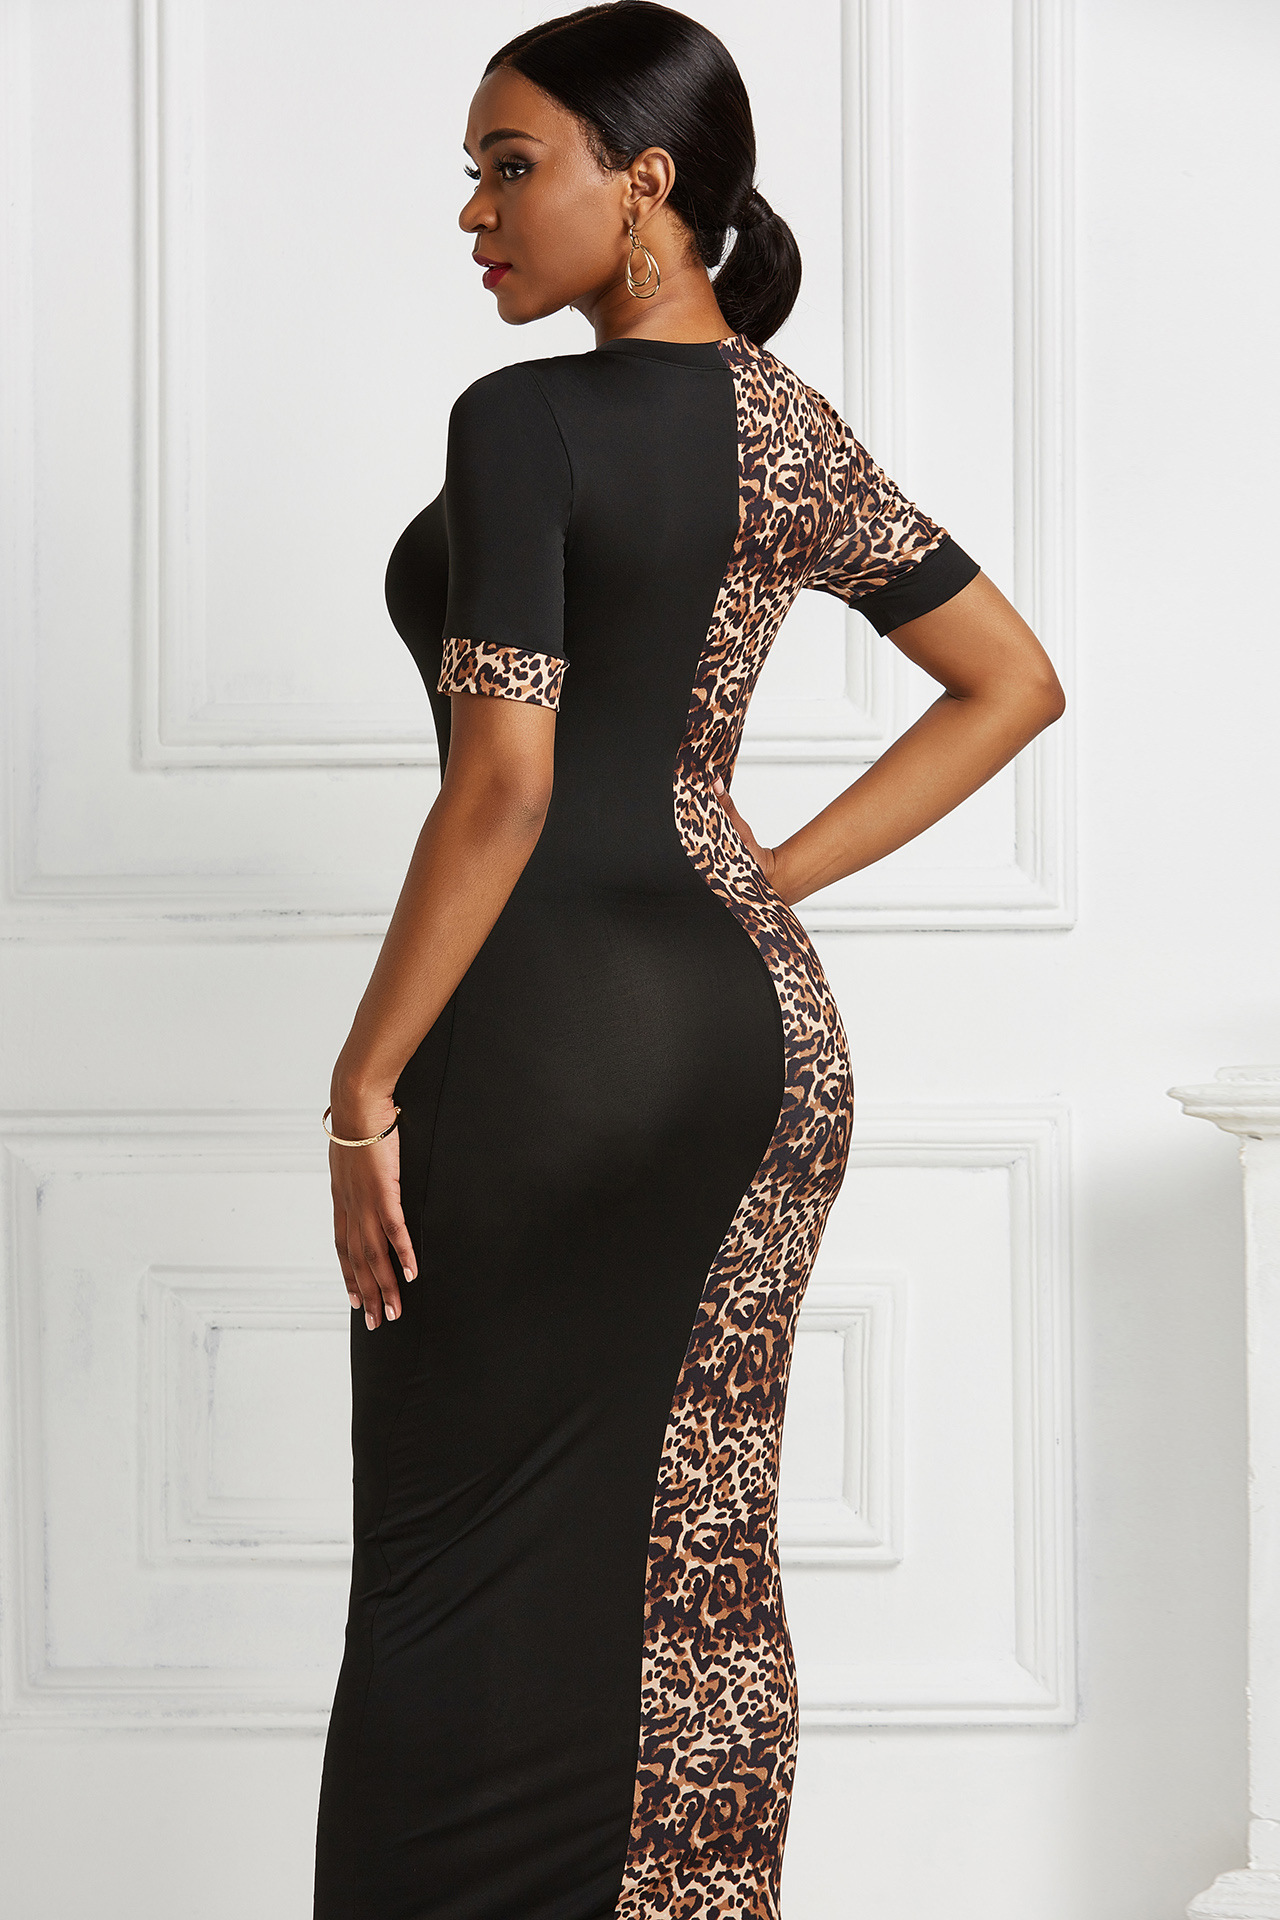 Elegant Leopard Print Patchwork Bodycon Short Sleeve O-neck Stretchy Maxi Dress